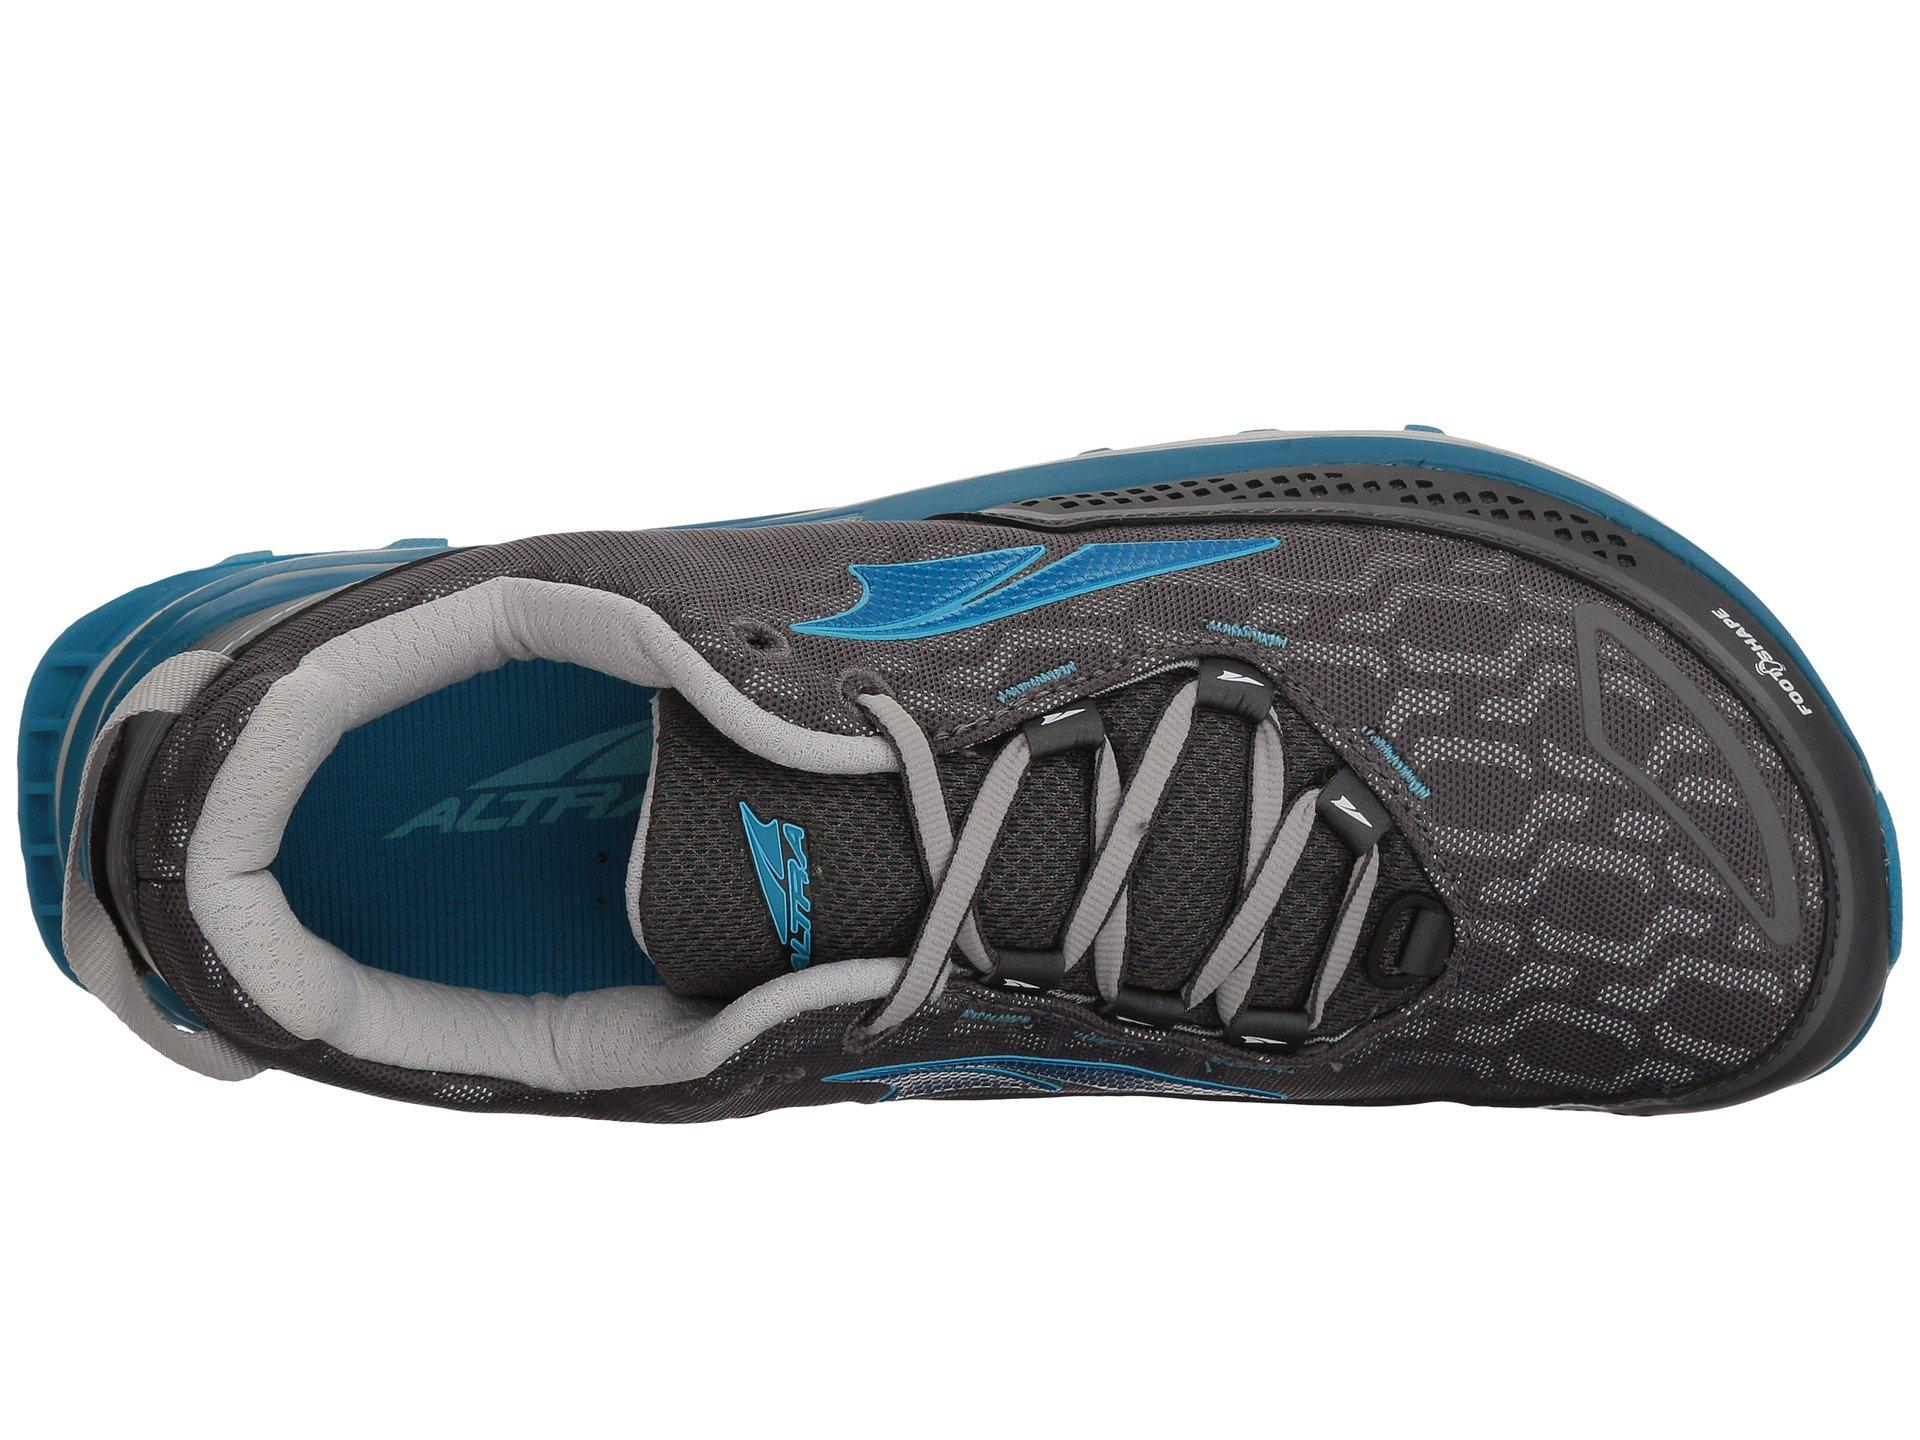 31ee65075641e Lyst - Altra Timp Iq (charcoal blue) Women s Running Shoes in Blue